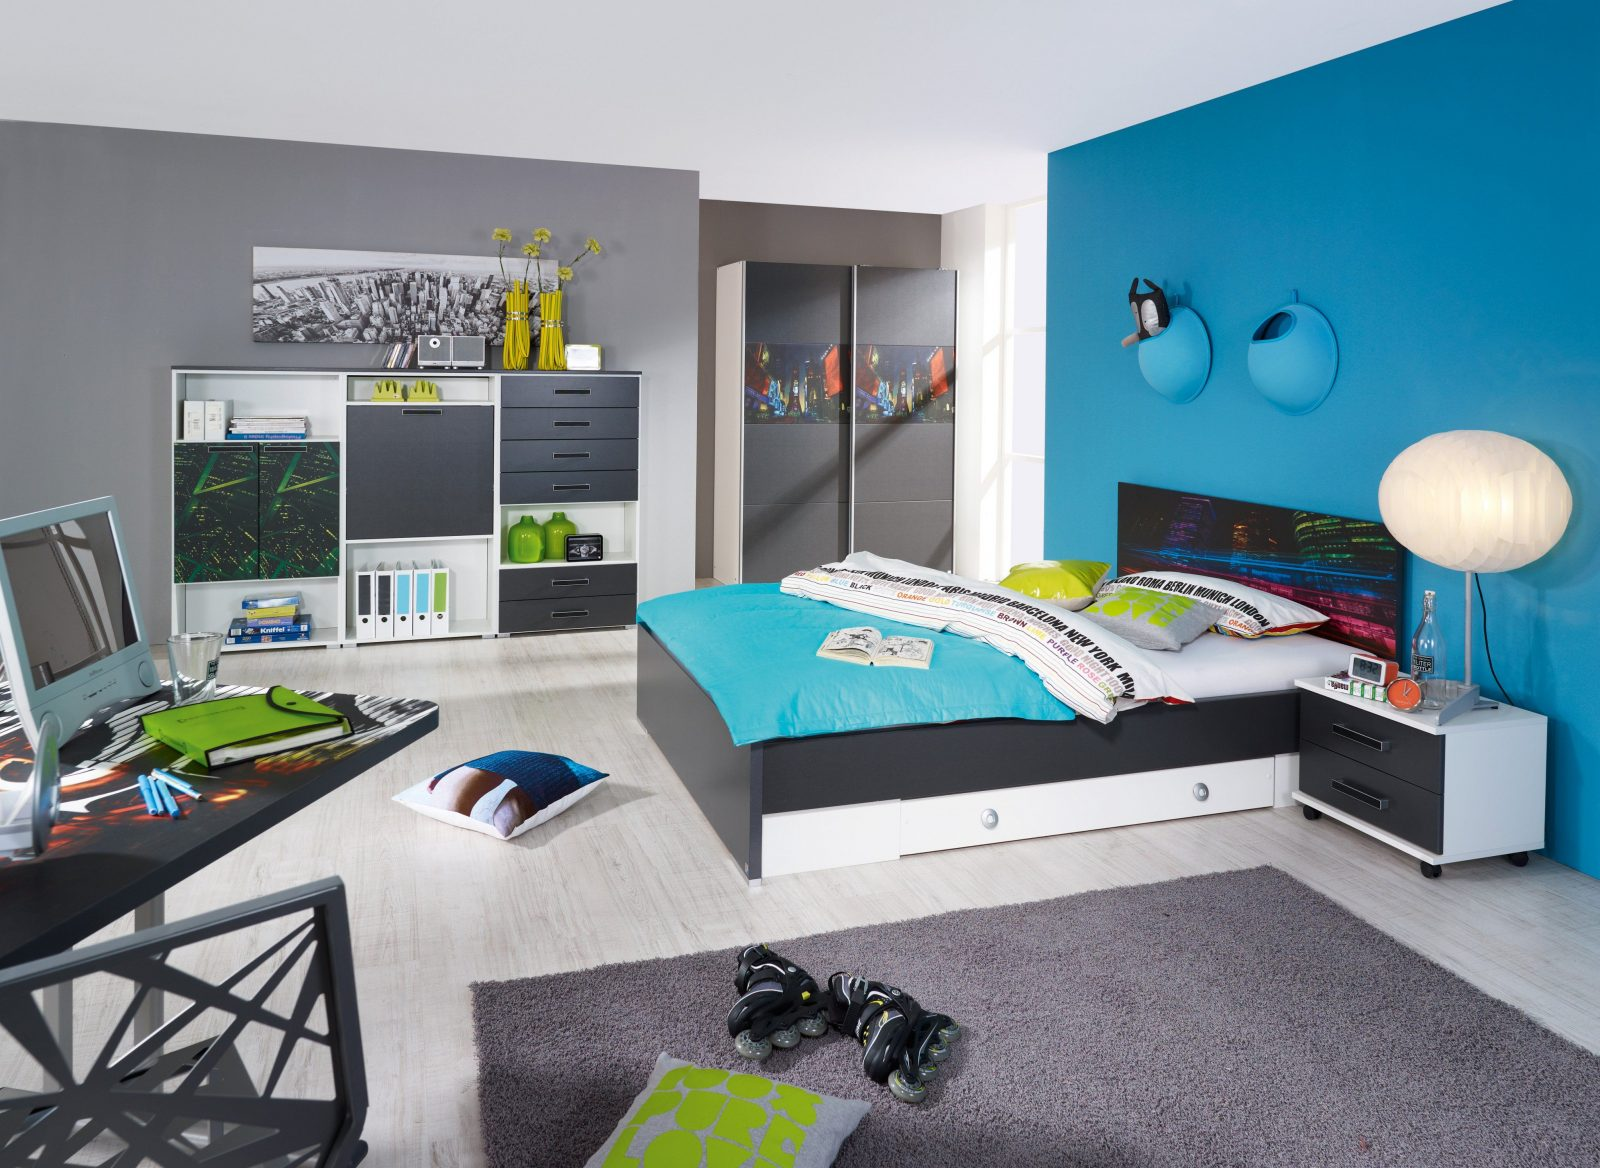 jugendzimmer f r 2 jungs haus design ideen. Black Bedroom Furniture Sets. Home Design Ideas